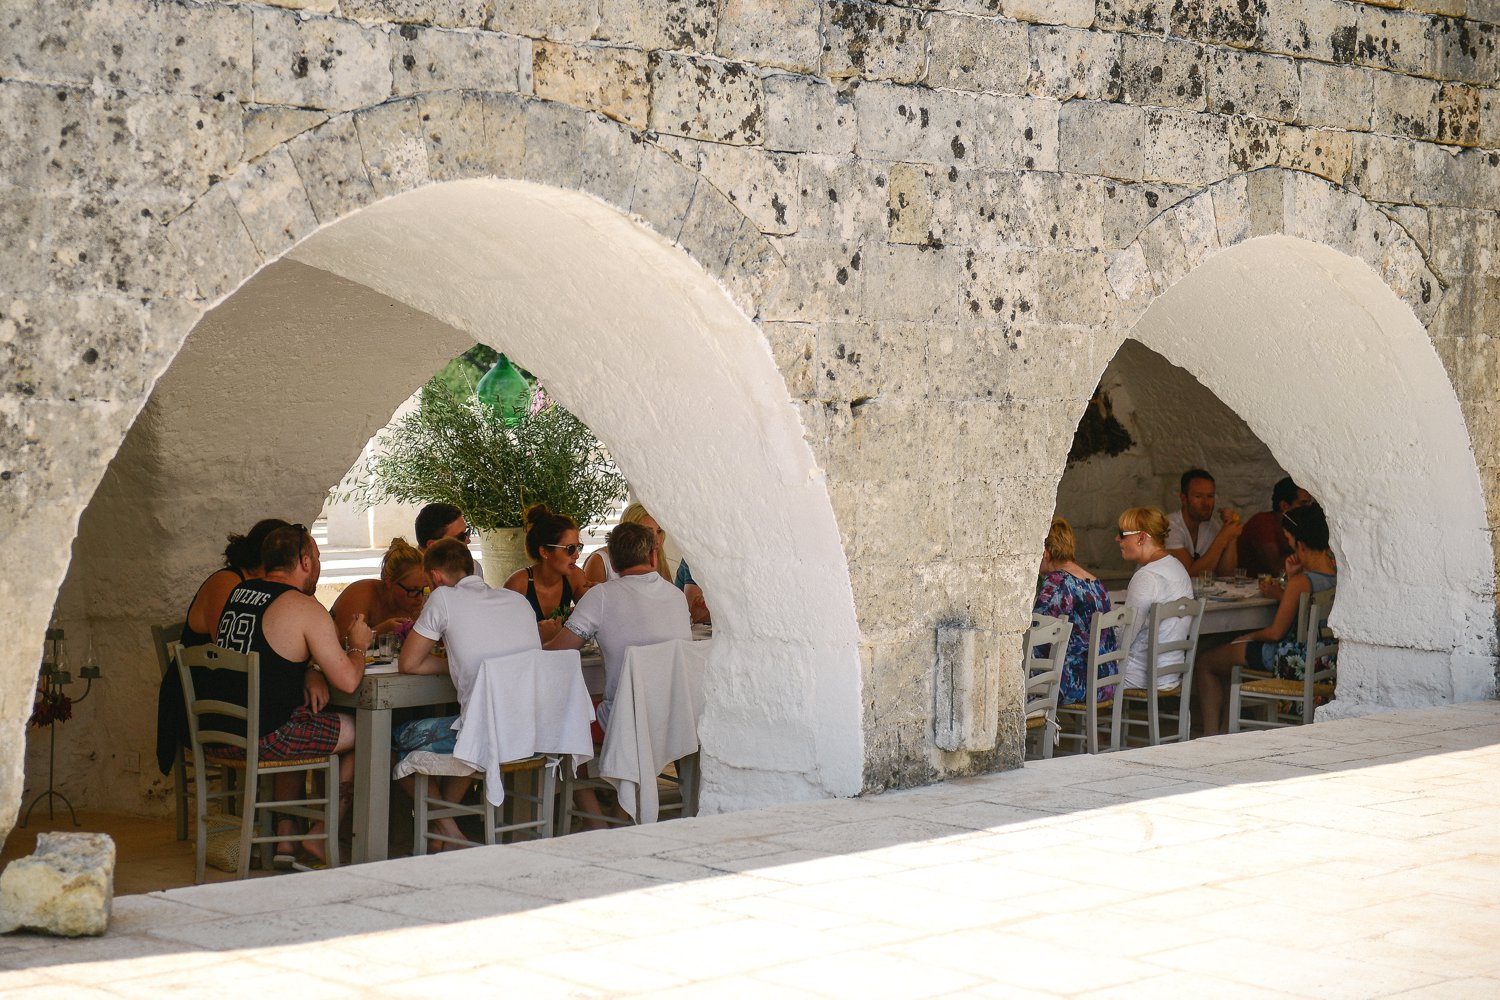 apulian-wedding-masseria-potenti_0012.jpg